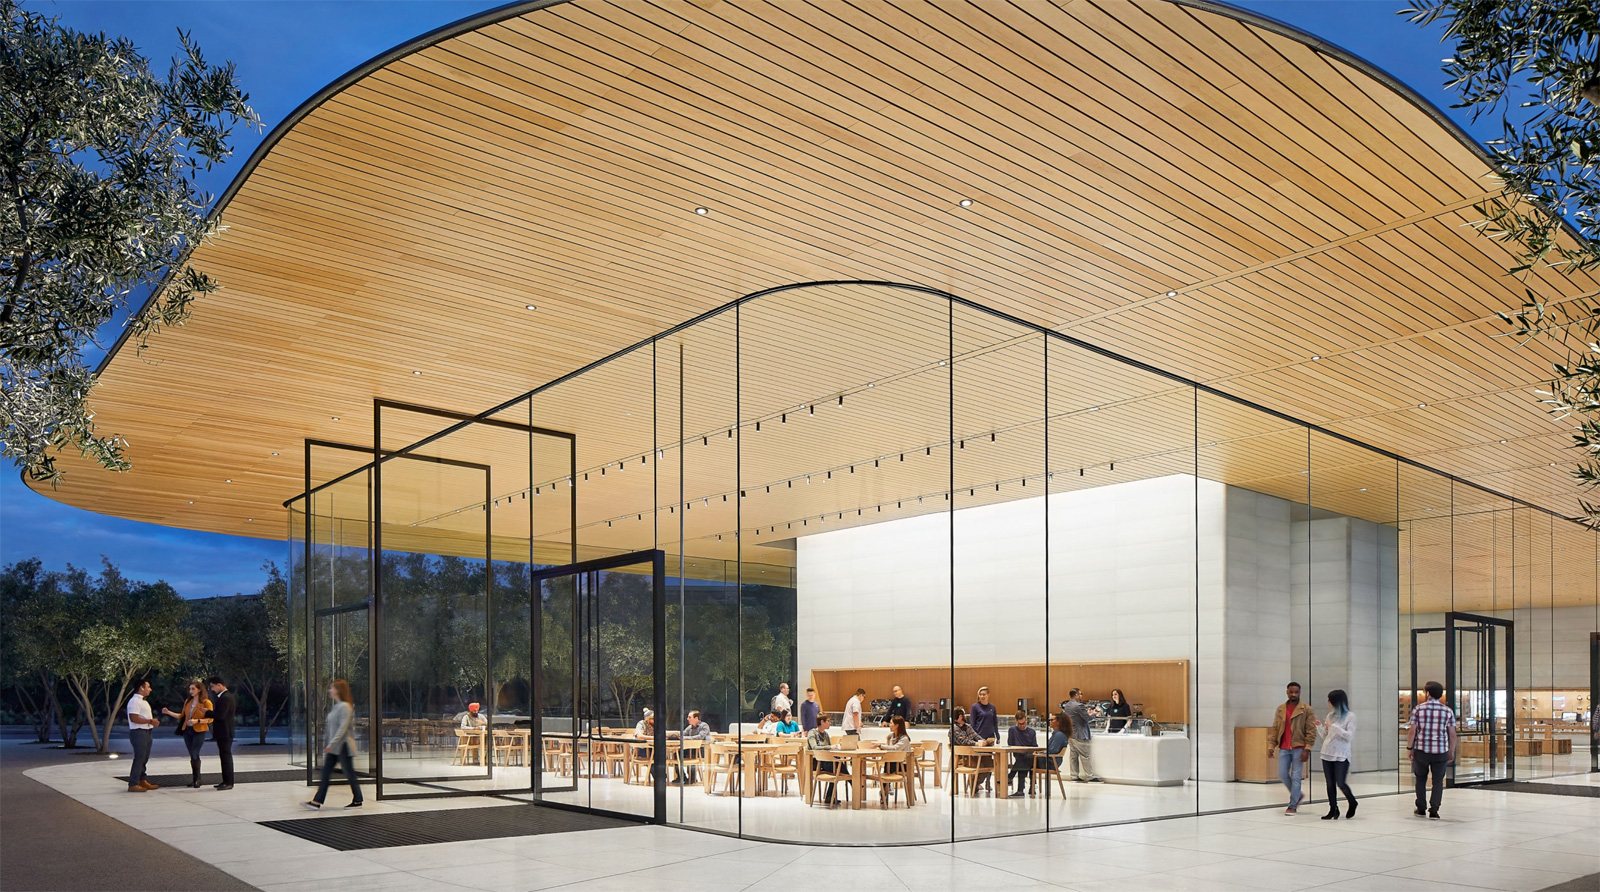 Techo del Visitor Center del Apple Park